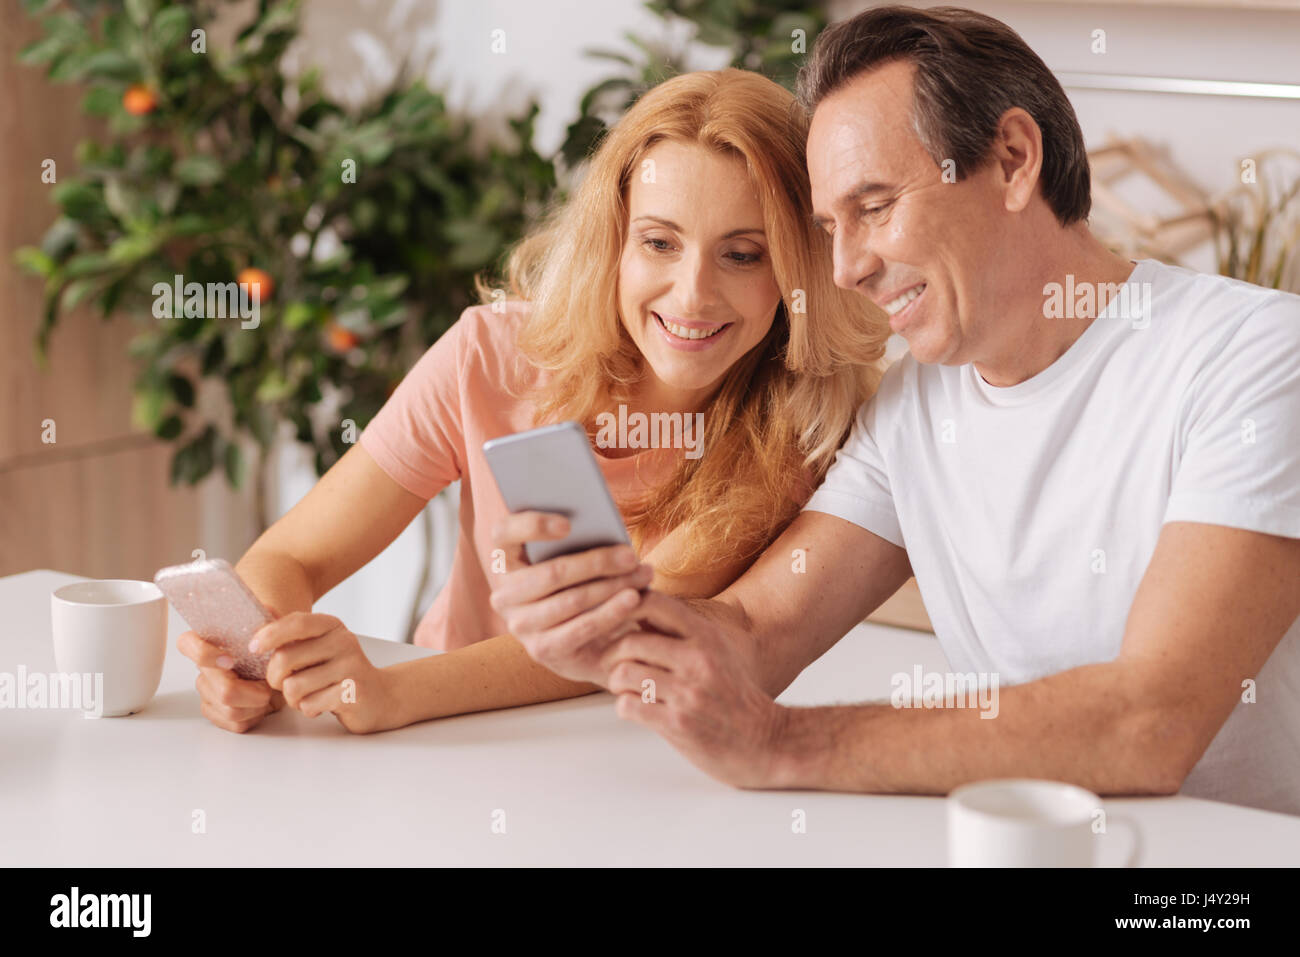 Cheerful couple using digital gadgets at home - Stock Image